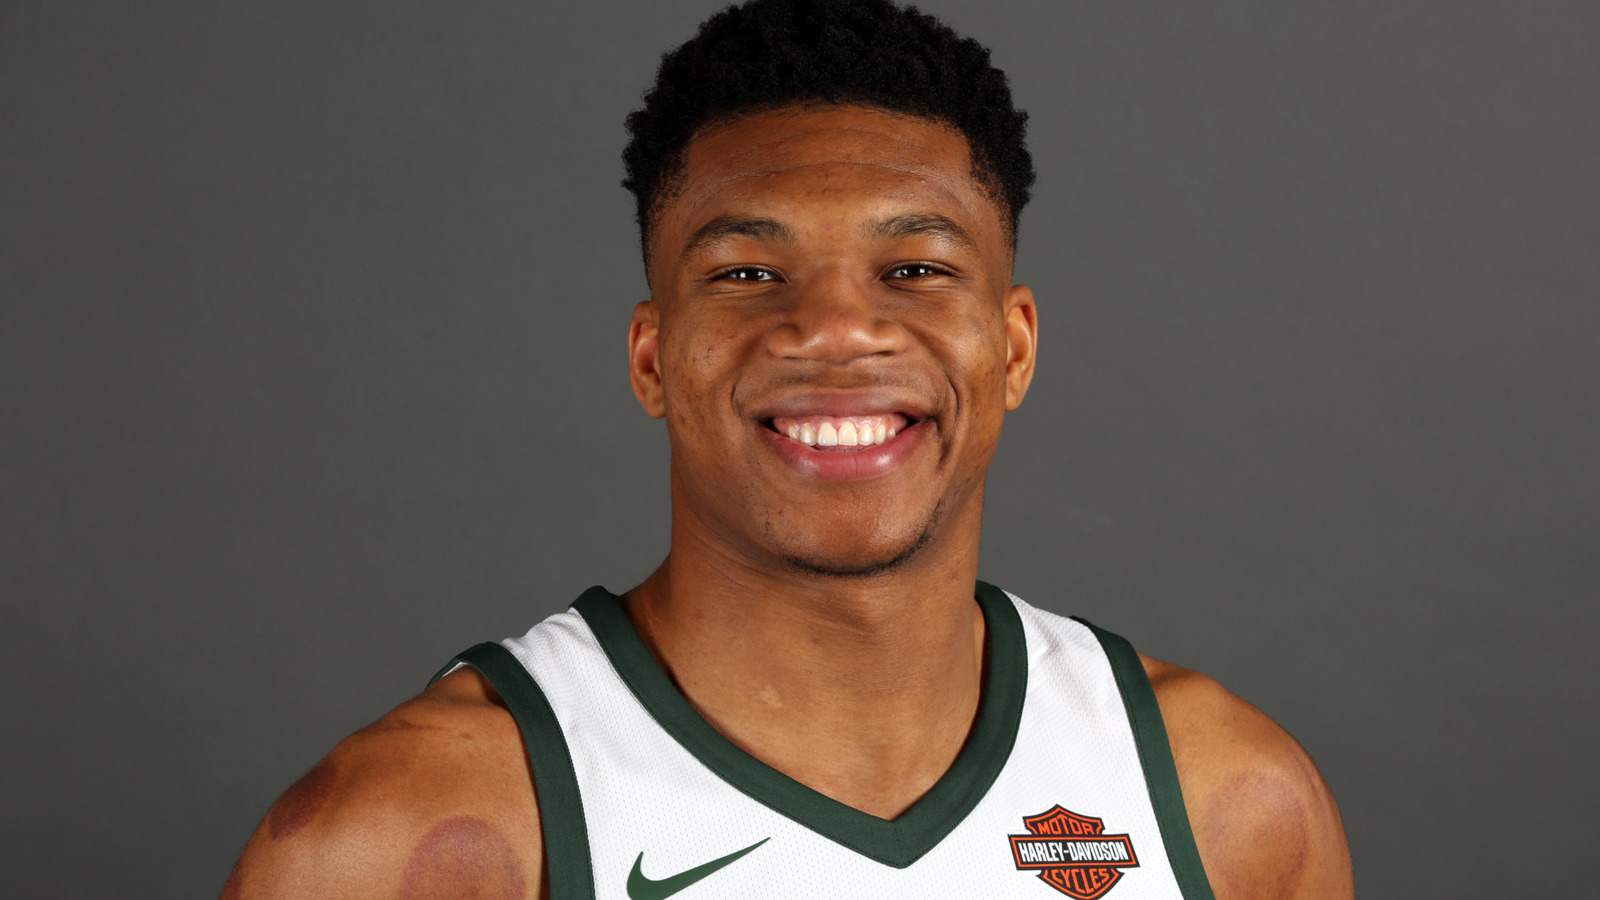 Lightning De Tampa Bay >> Why this season is the one for Giannis Antetokounmpo | Yardbarker.com